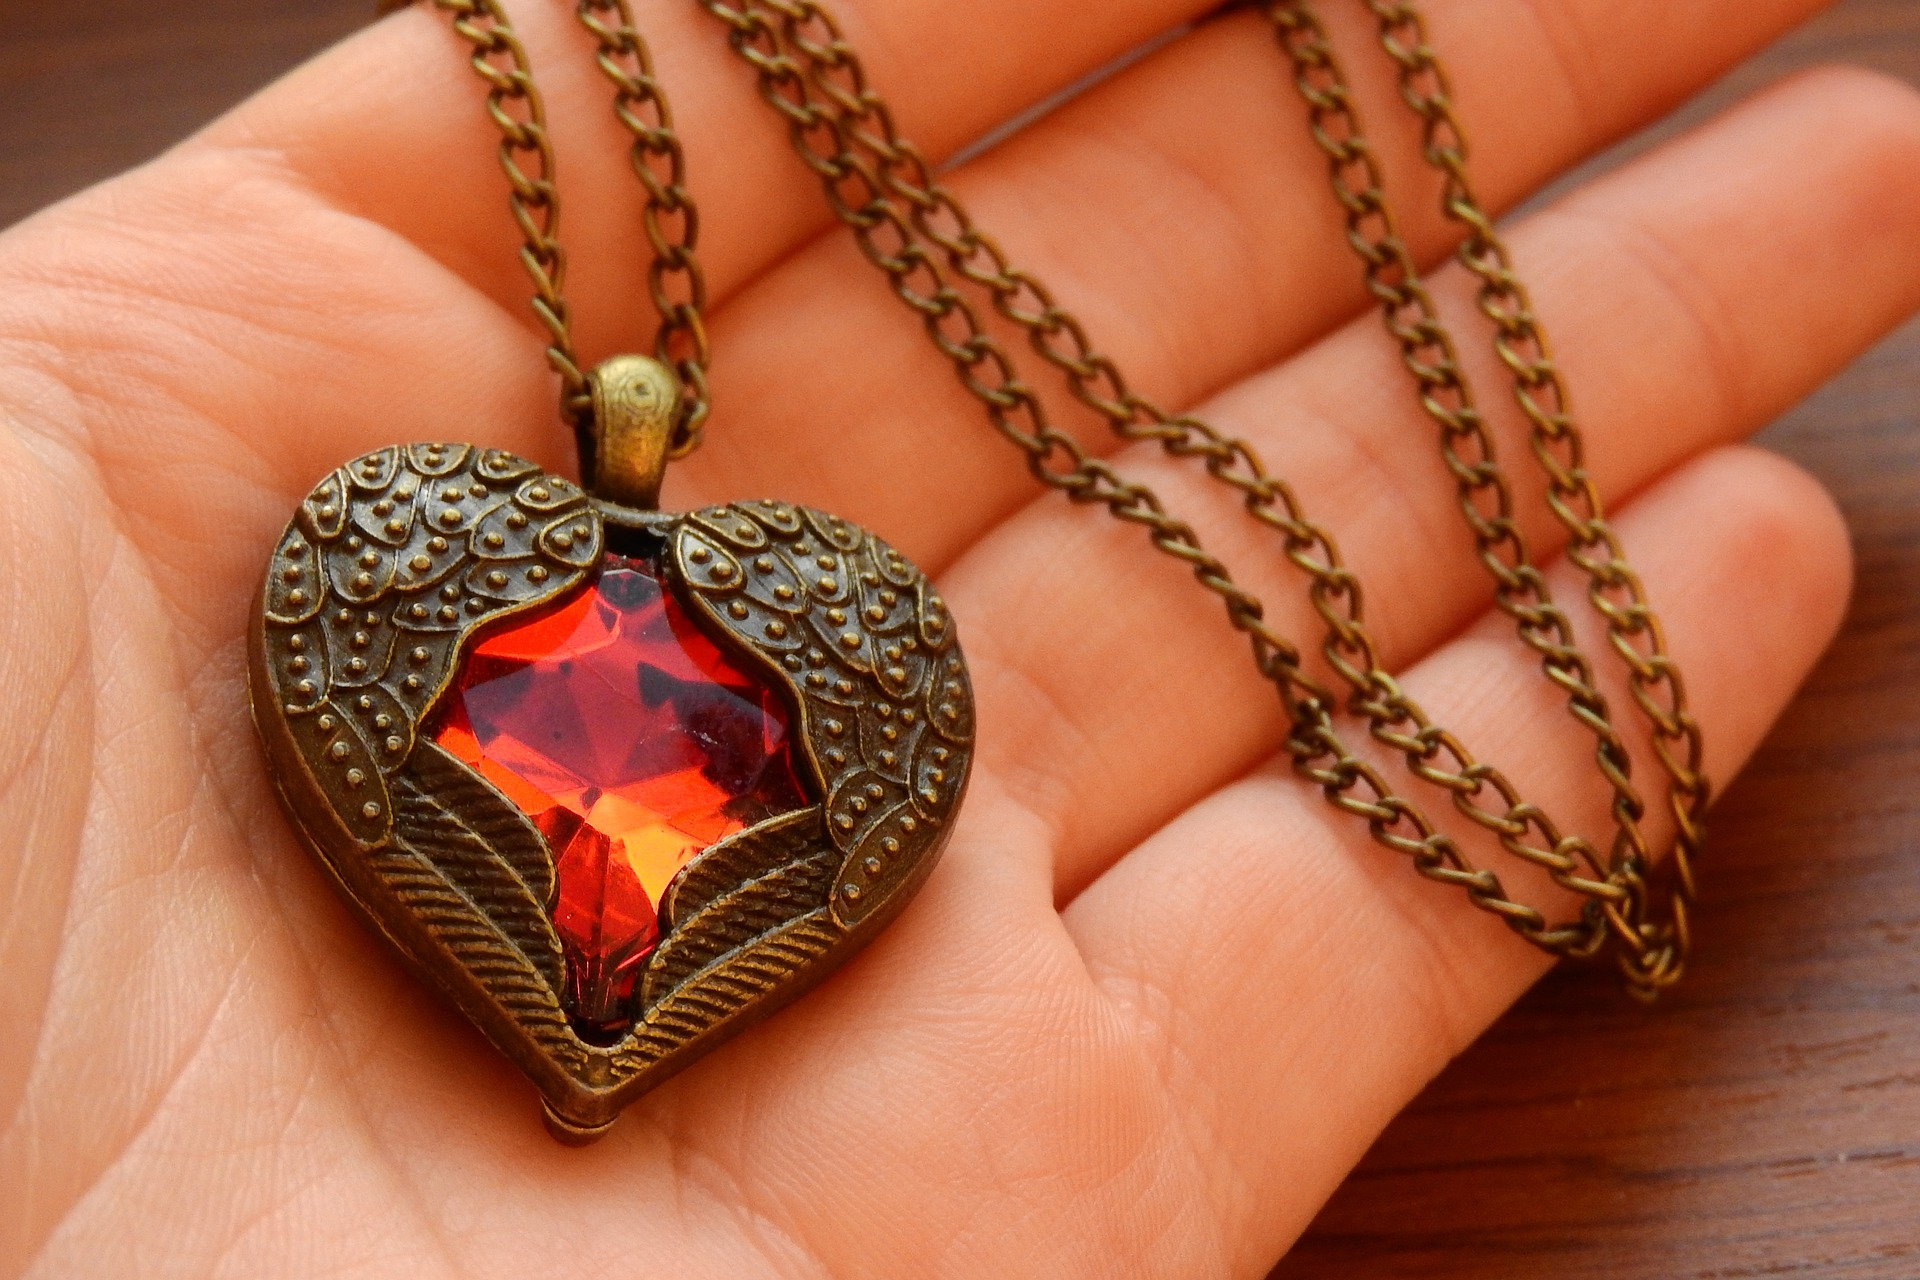 A heartshaped necklace with wings covering a red jewel 2